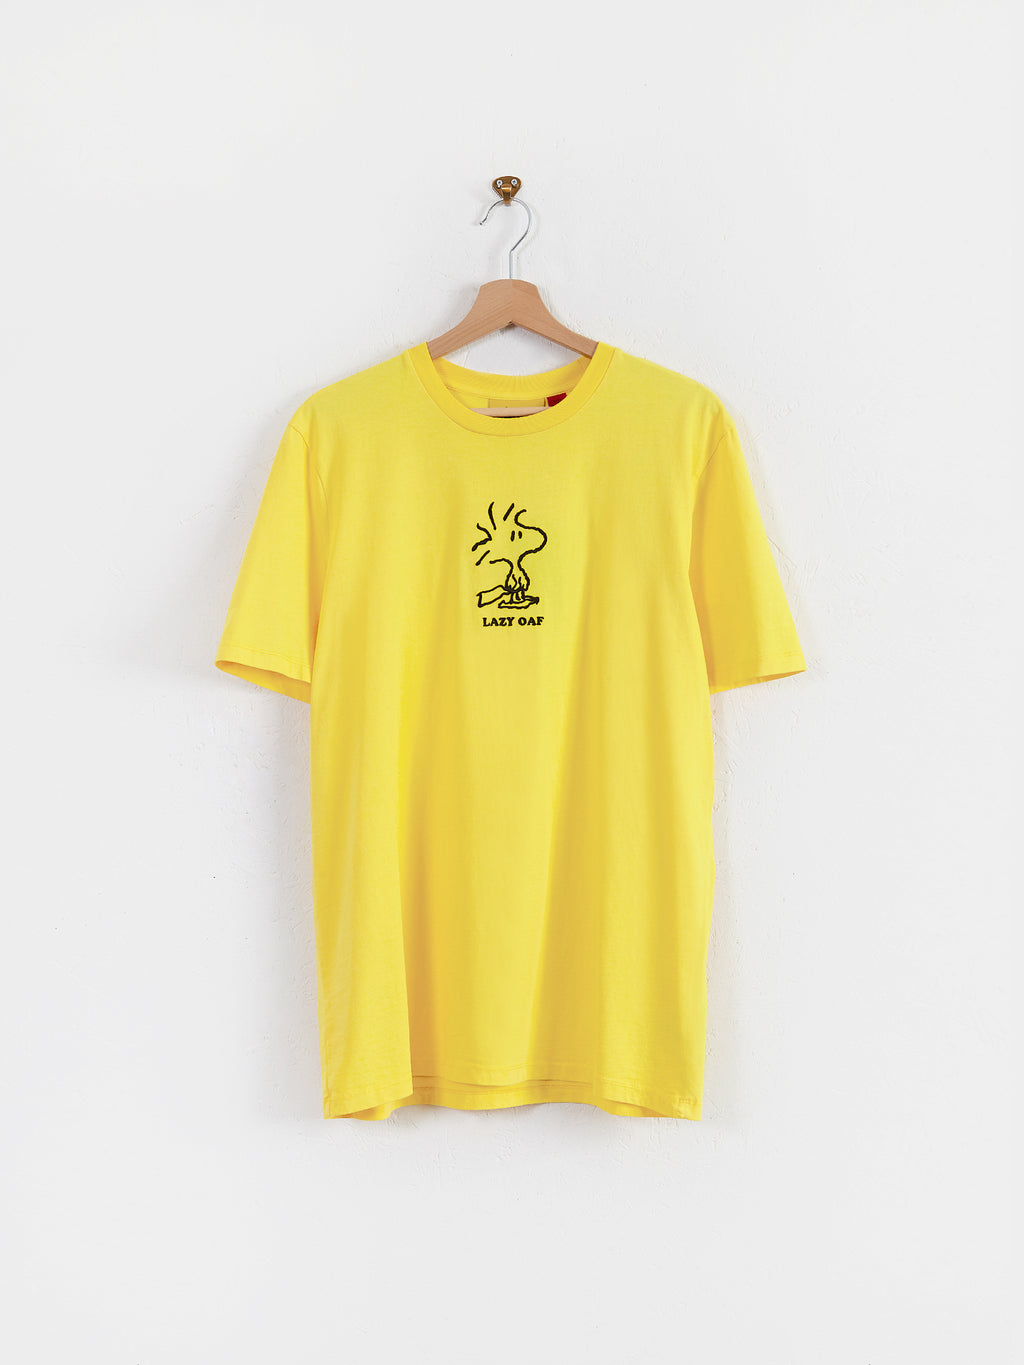 Lazy Oaf x Peanuts Woodstock Yellow T-Shirt